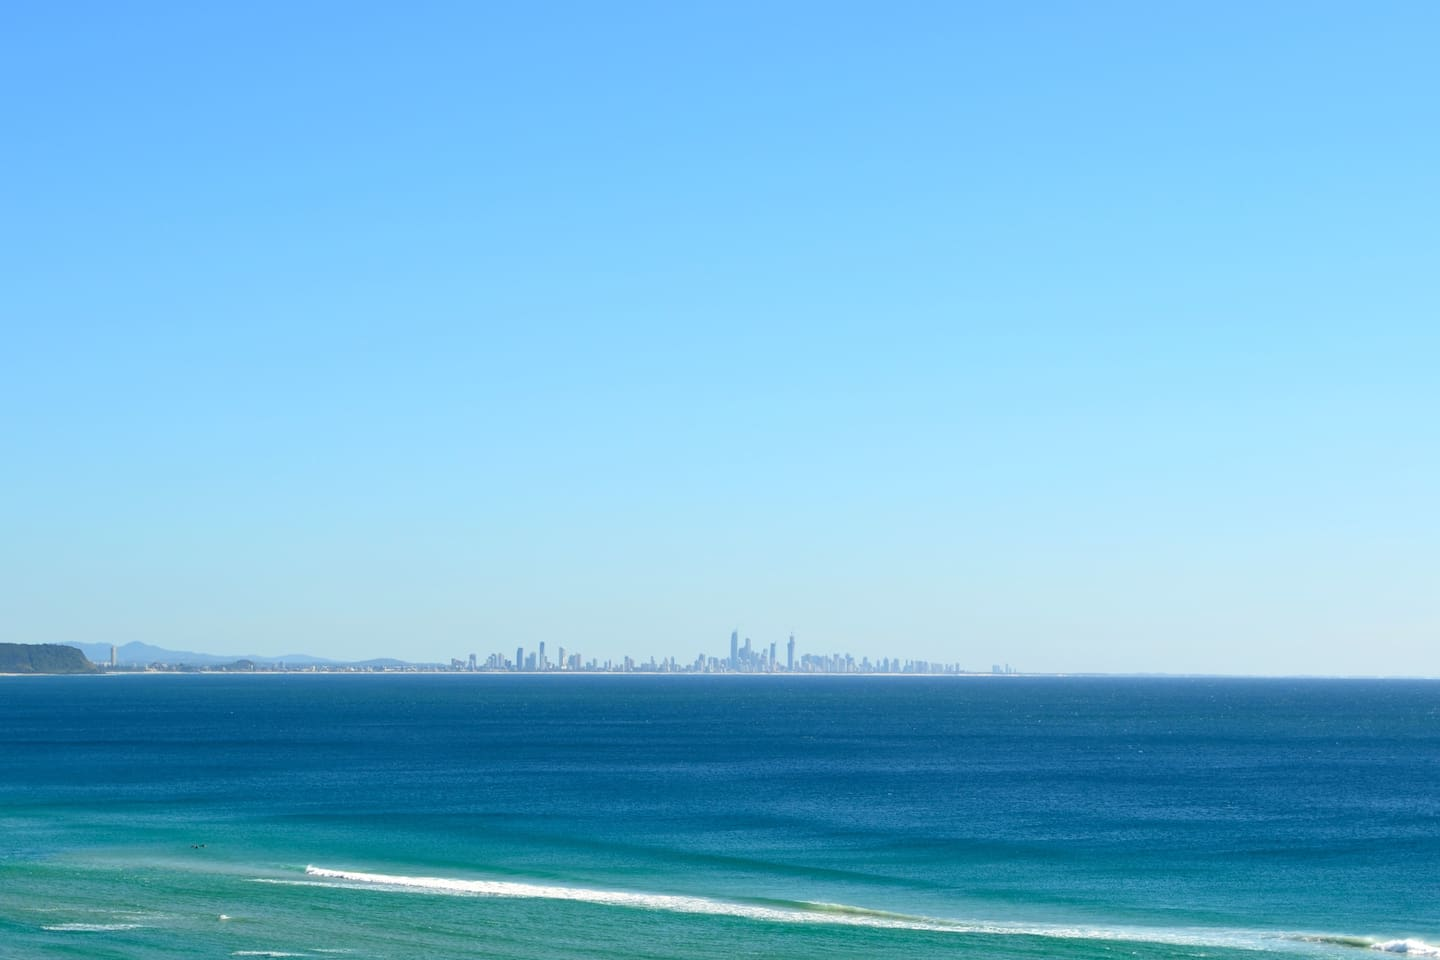 View from balcony to Surfer Paradise